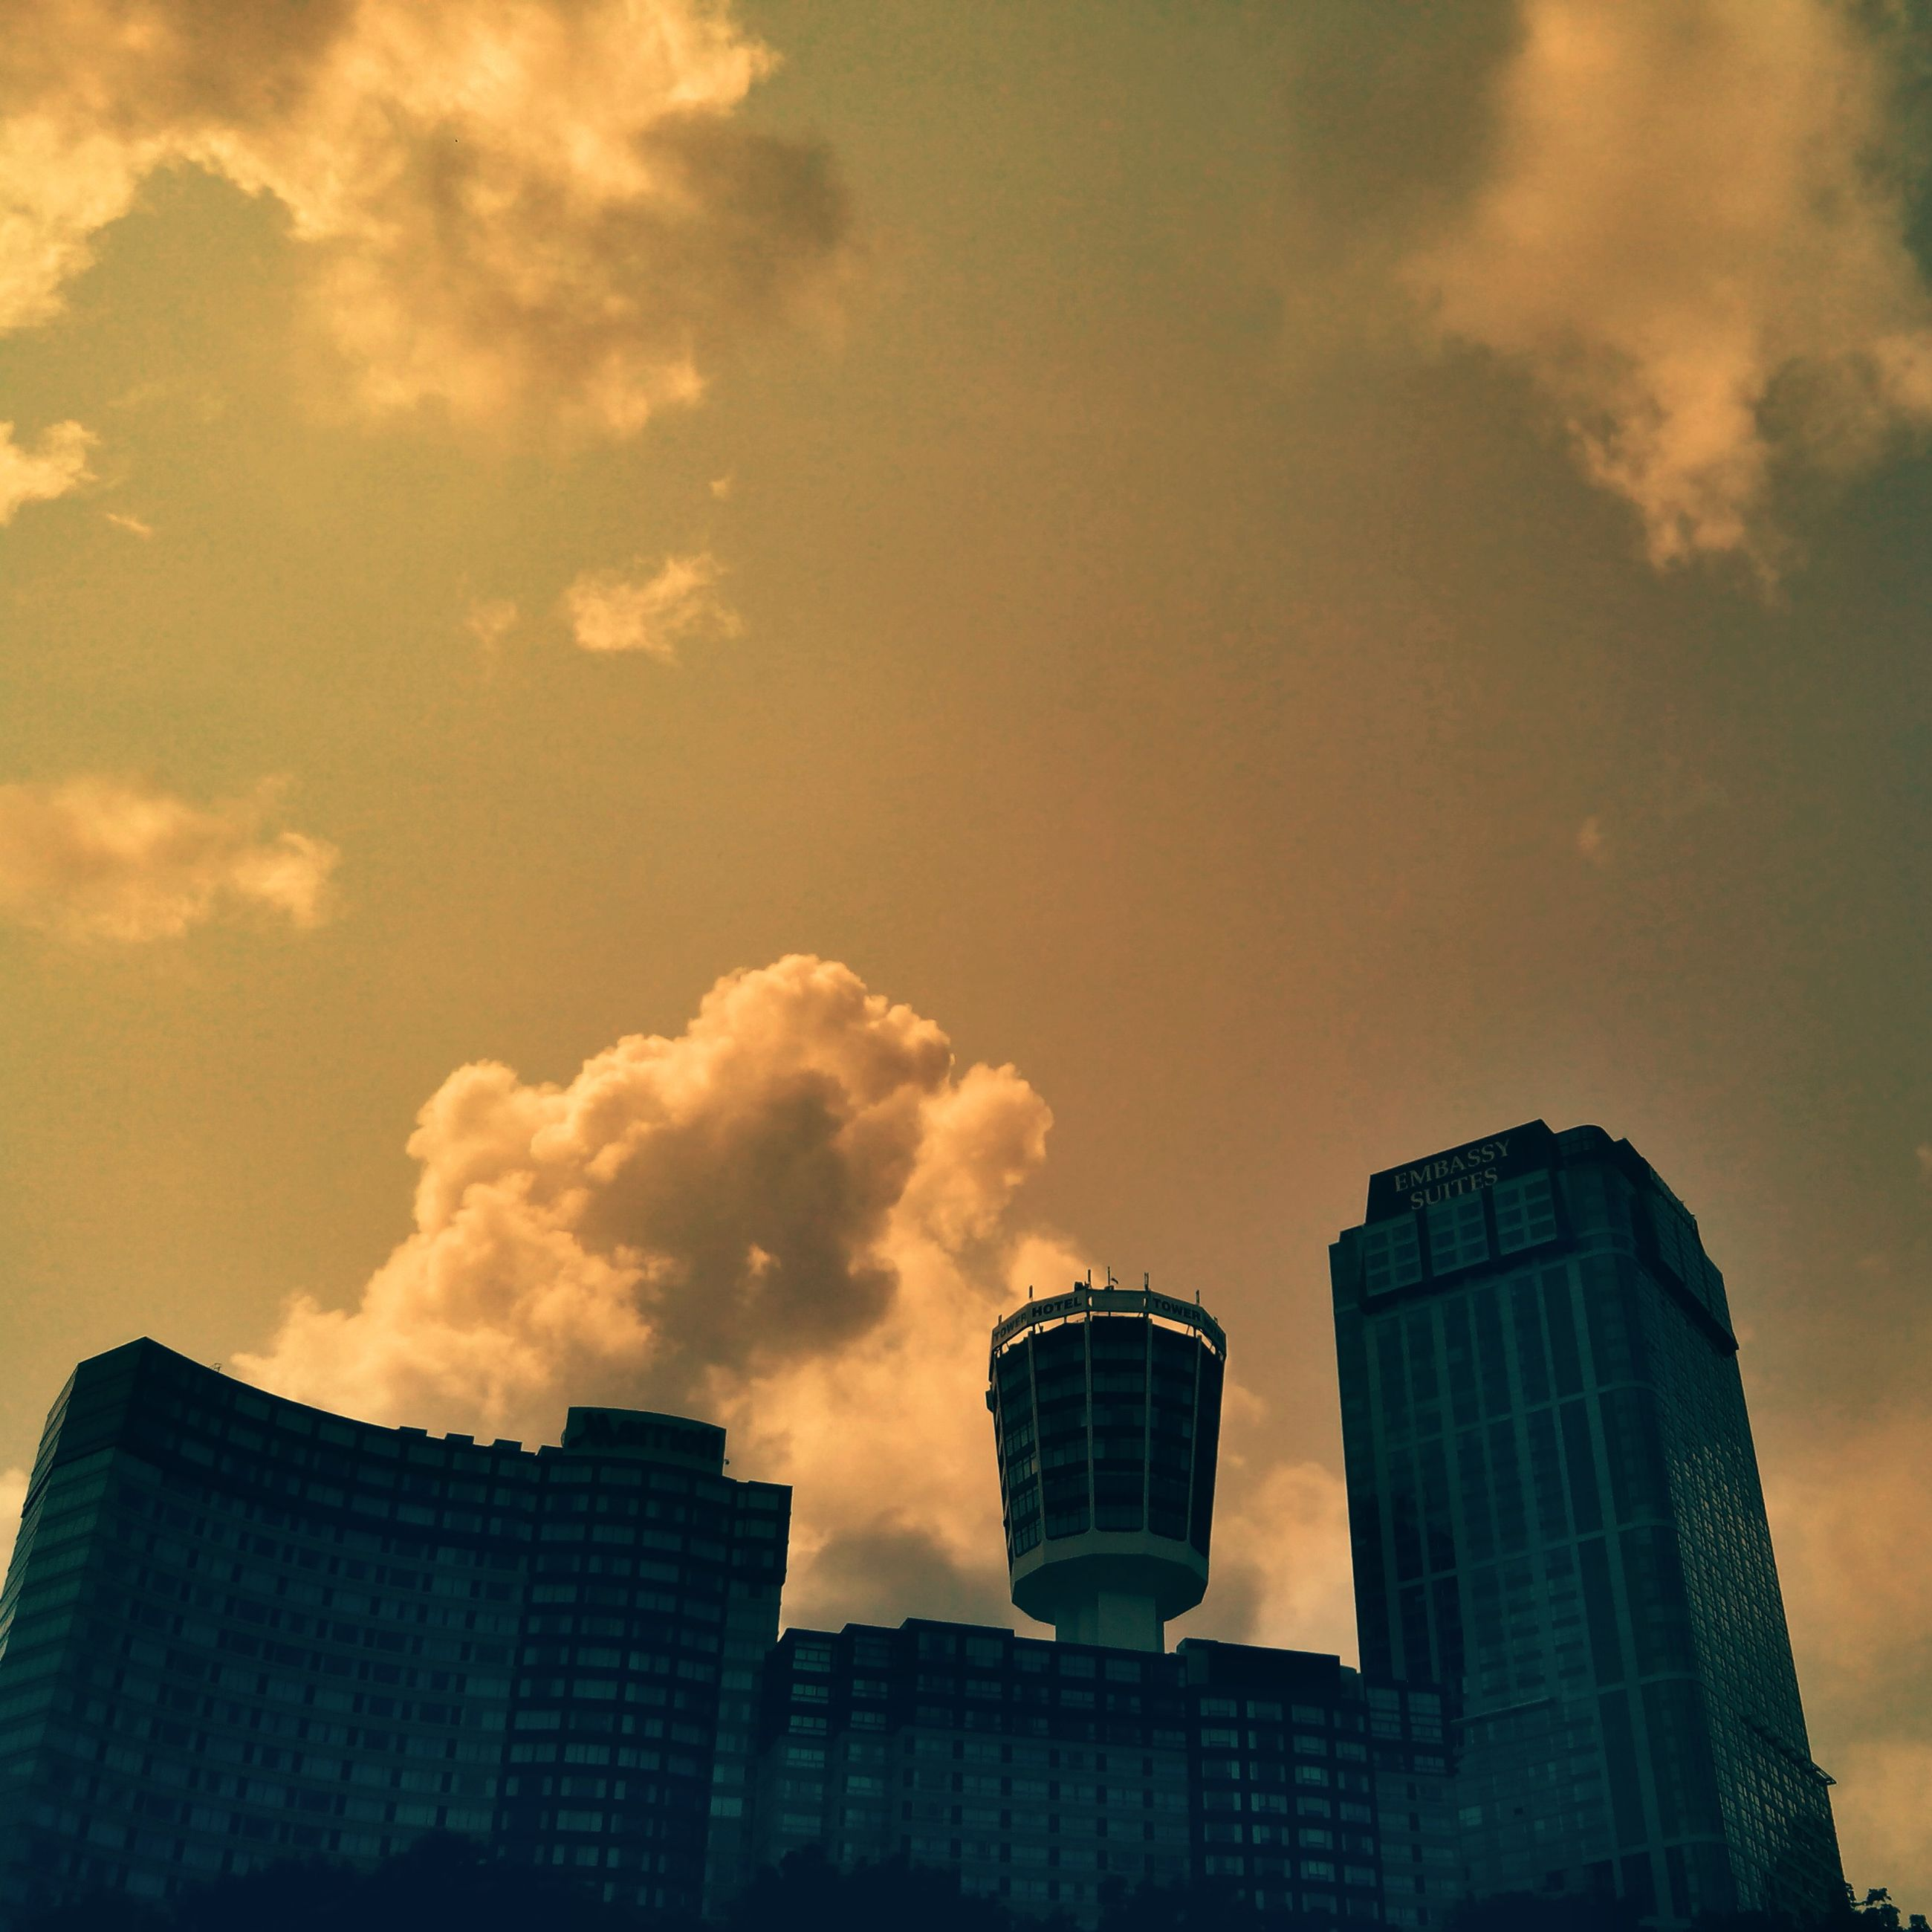 architecture, building exterior, built structure, low angle view, sky, city, cloud - sky, modern, skyscraper, tower, tall - high, office building, building, sunset, cloud, cloudy, outdoors, no people, high section, silhouette